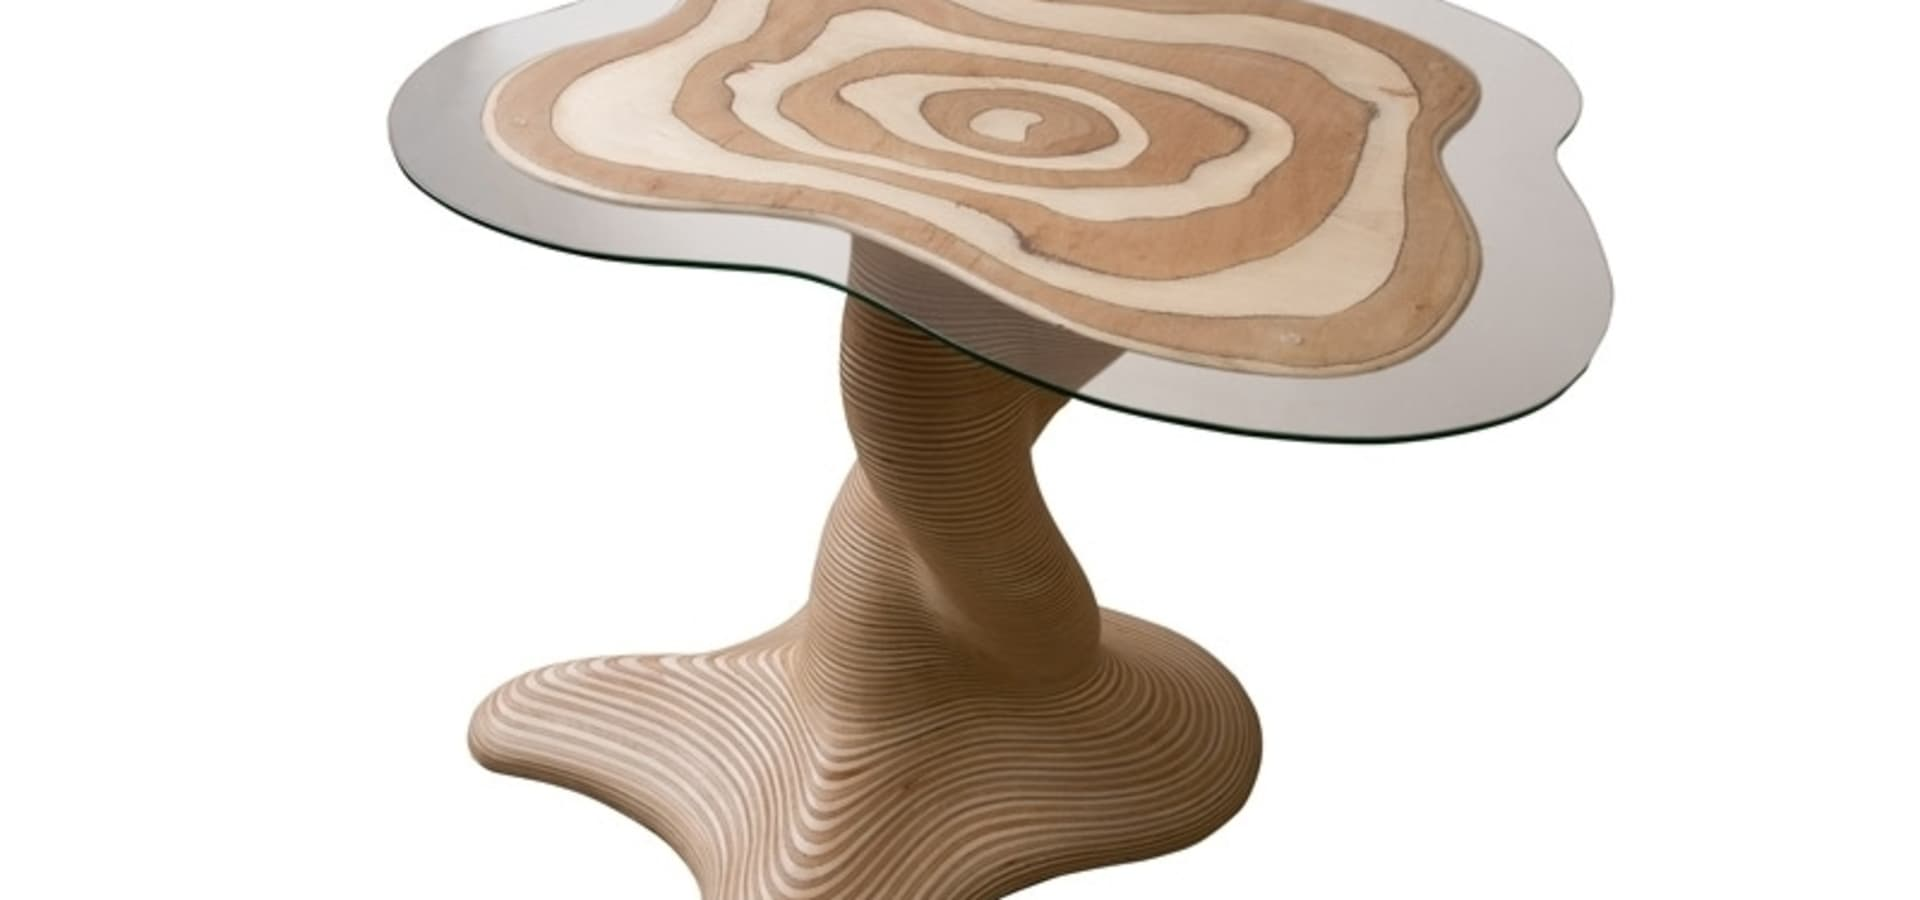 Meubles sculpt s de christina jekey homify Table vue de haut